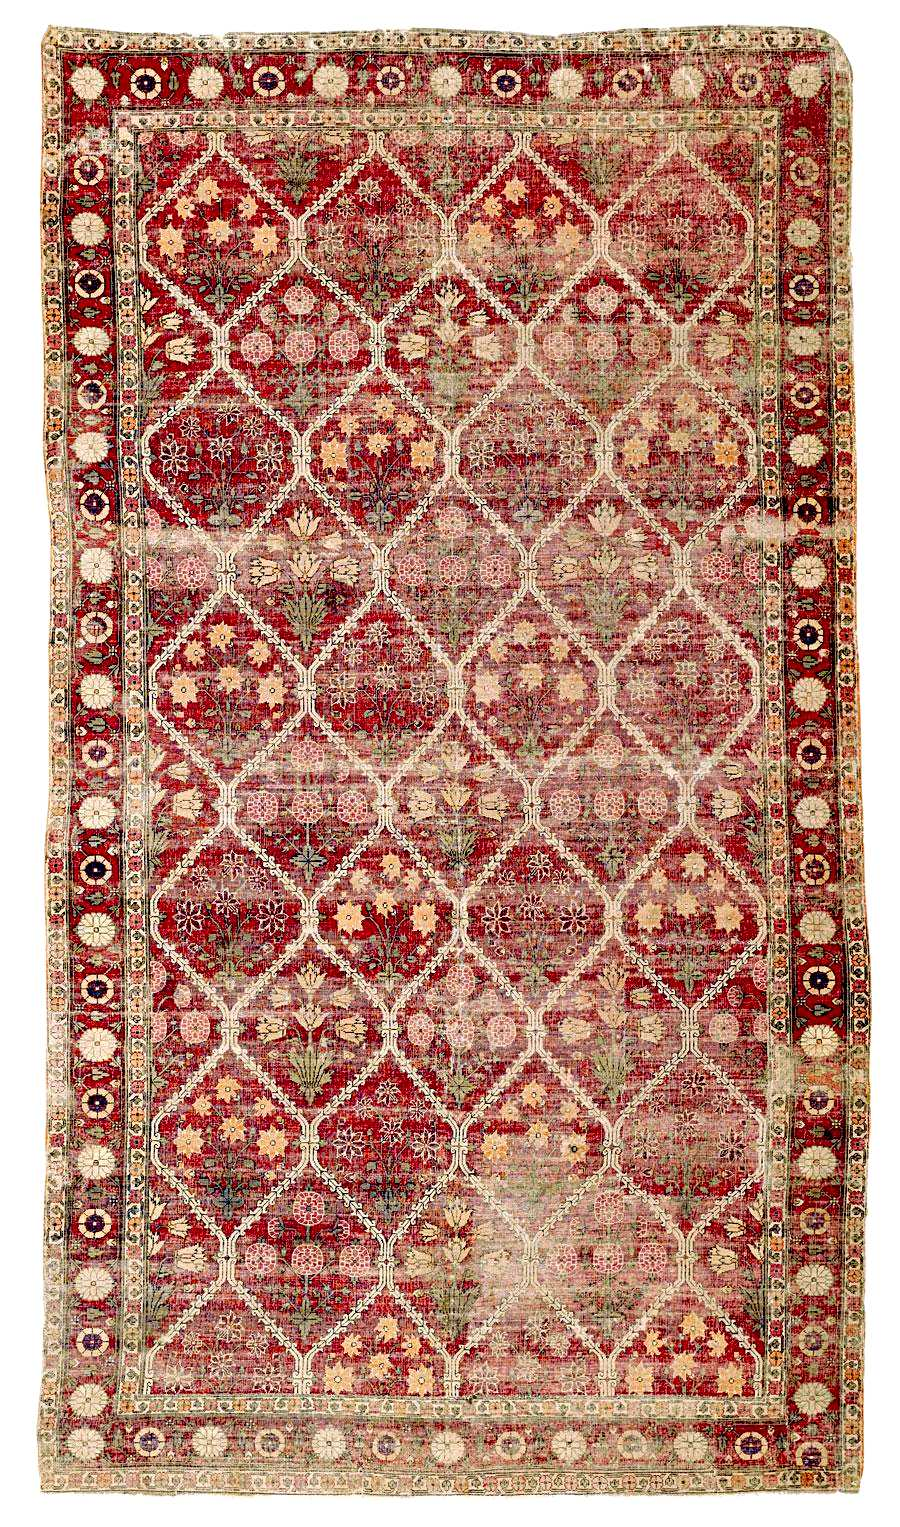 While Agra Rugs Mostly Have Scrolling Fl Designs A Diagonal Tiled Motif Is Also Iconic For The Area Below Are Two Examples Of Antique From